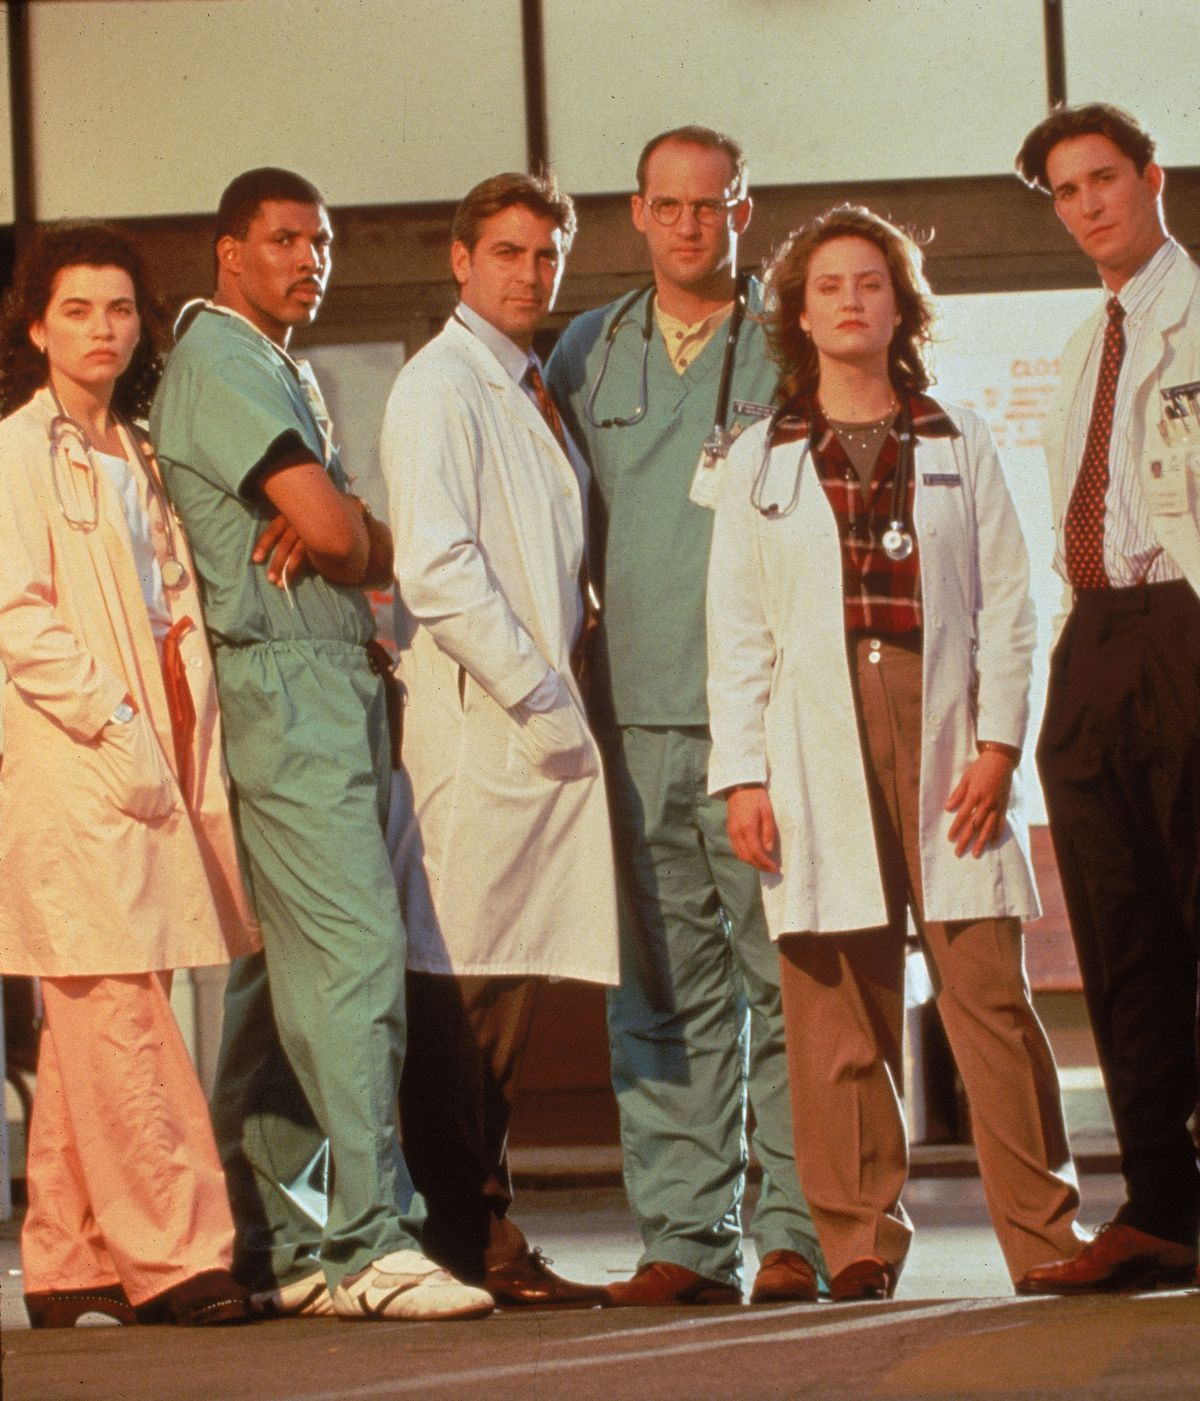 The cast of 'ER' (GettyImages)